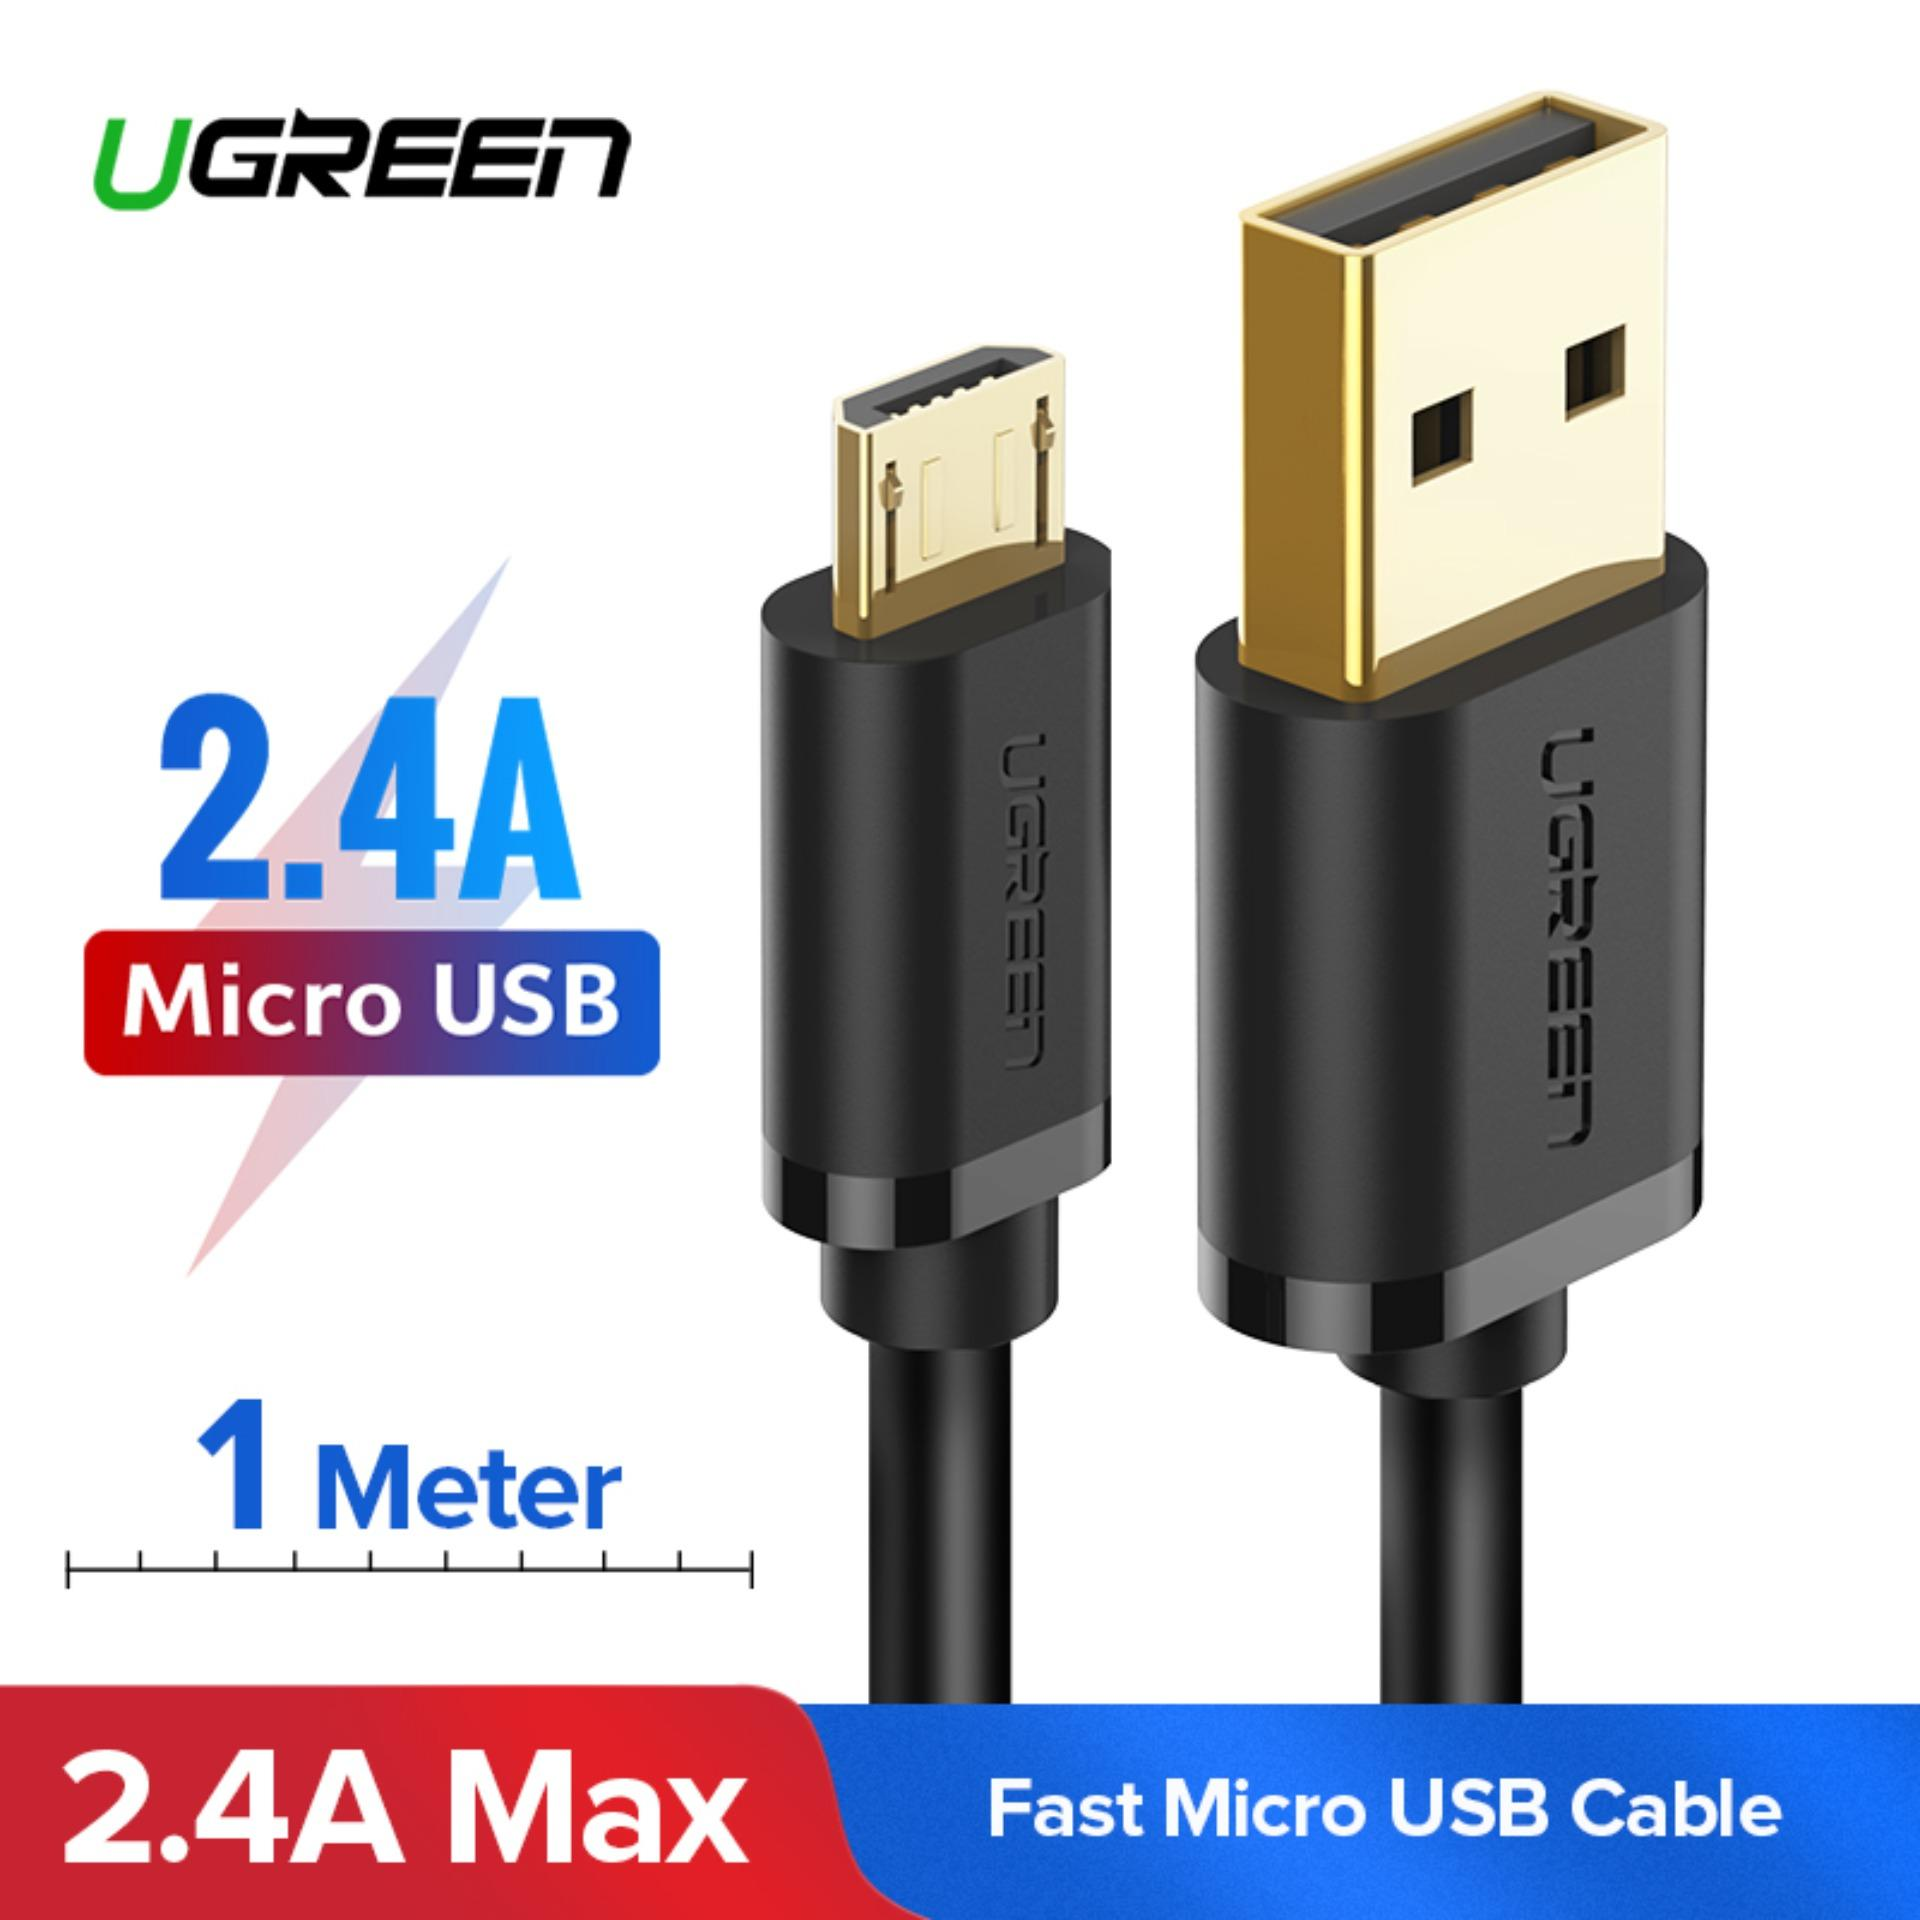 Buy Cables Accessories Converters Usb Charger Wiring Ugreen 1meter Micro Cable 20 A Male To B Sync Charging